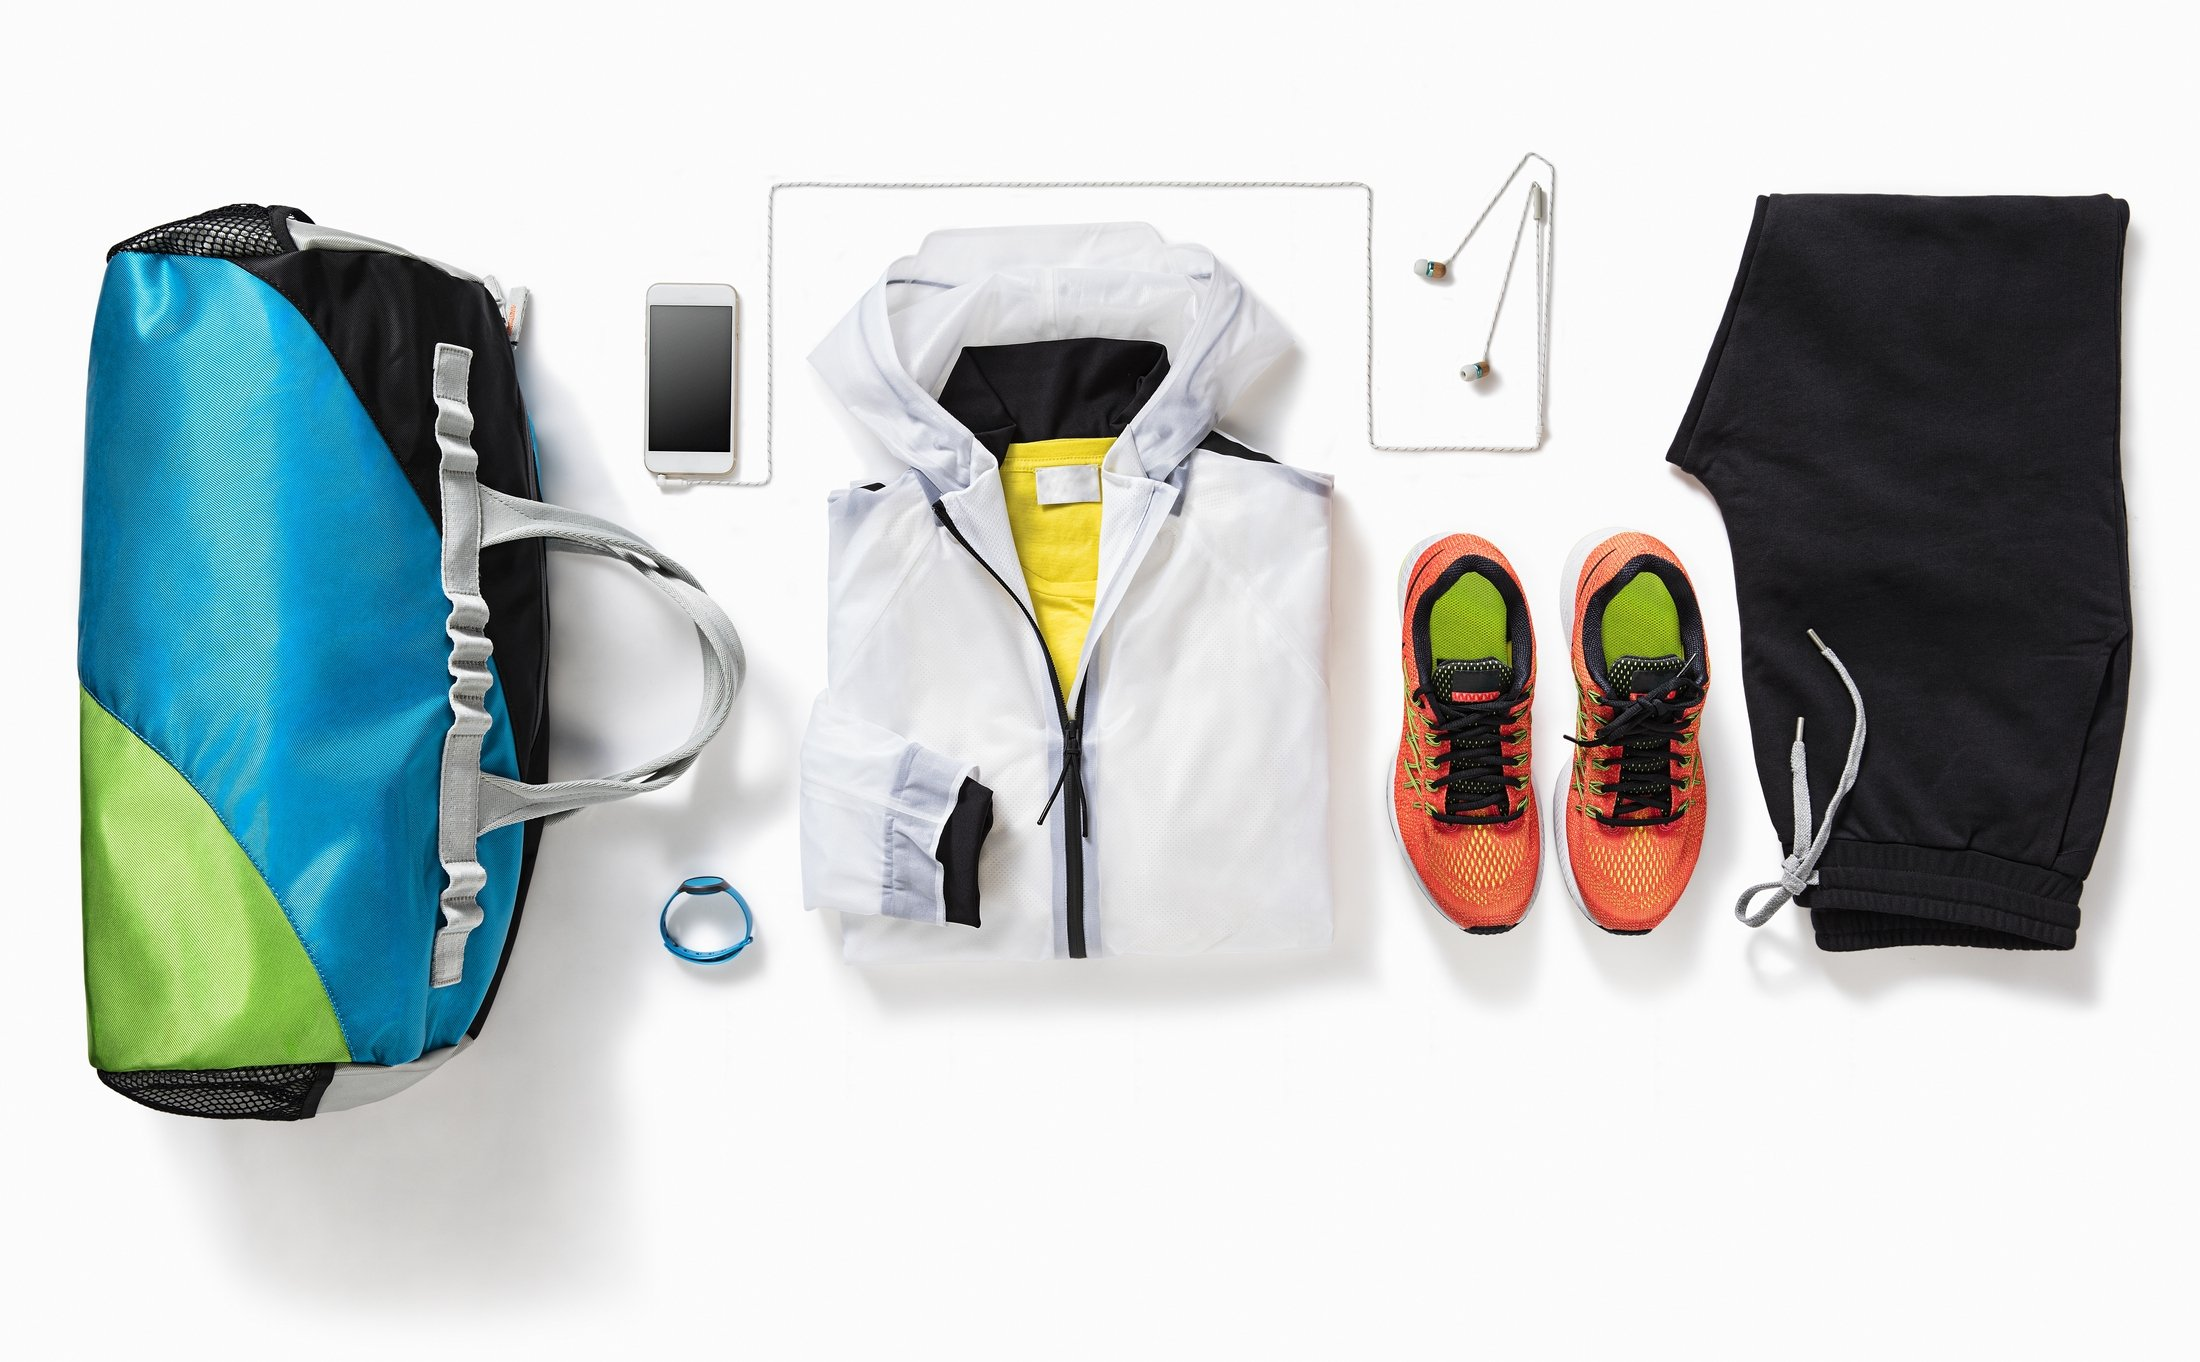 Wearing the right gear and choosing the correct shoes is more important when doing sports outdoors. (iStock Photo)